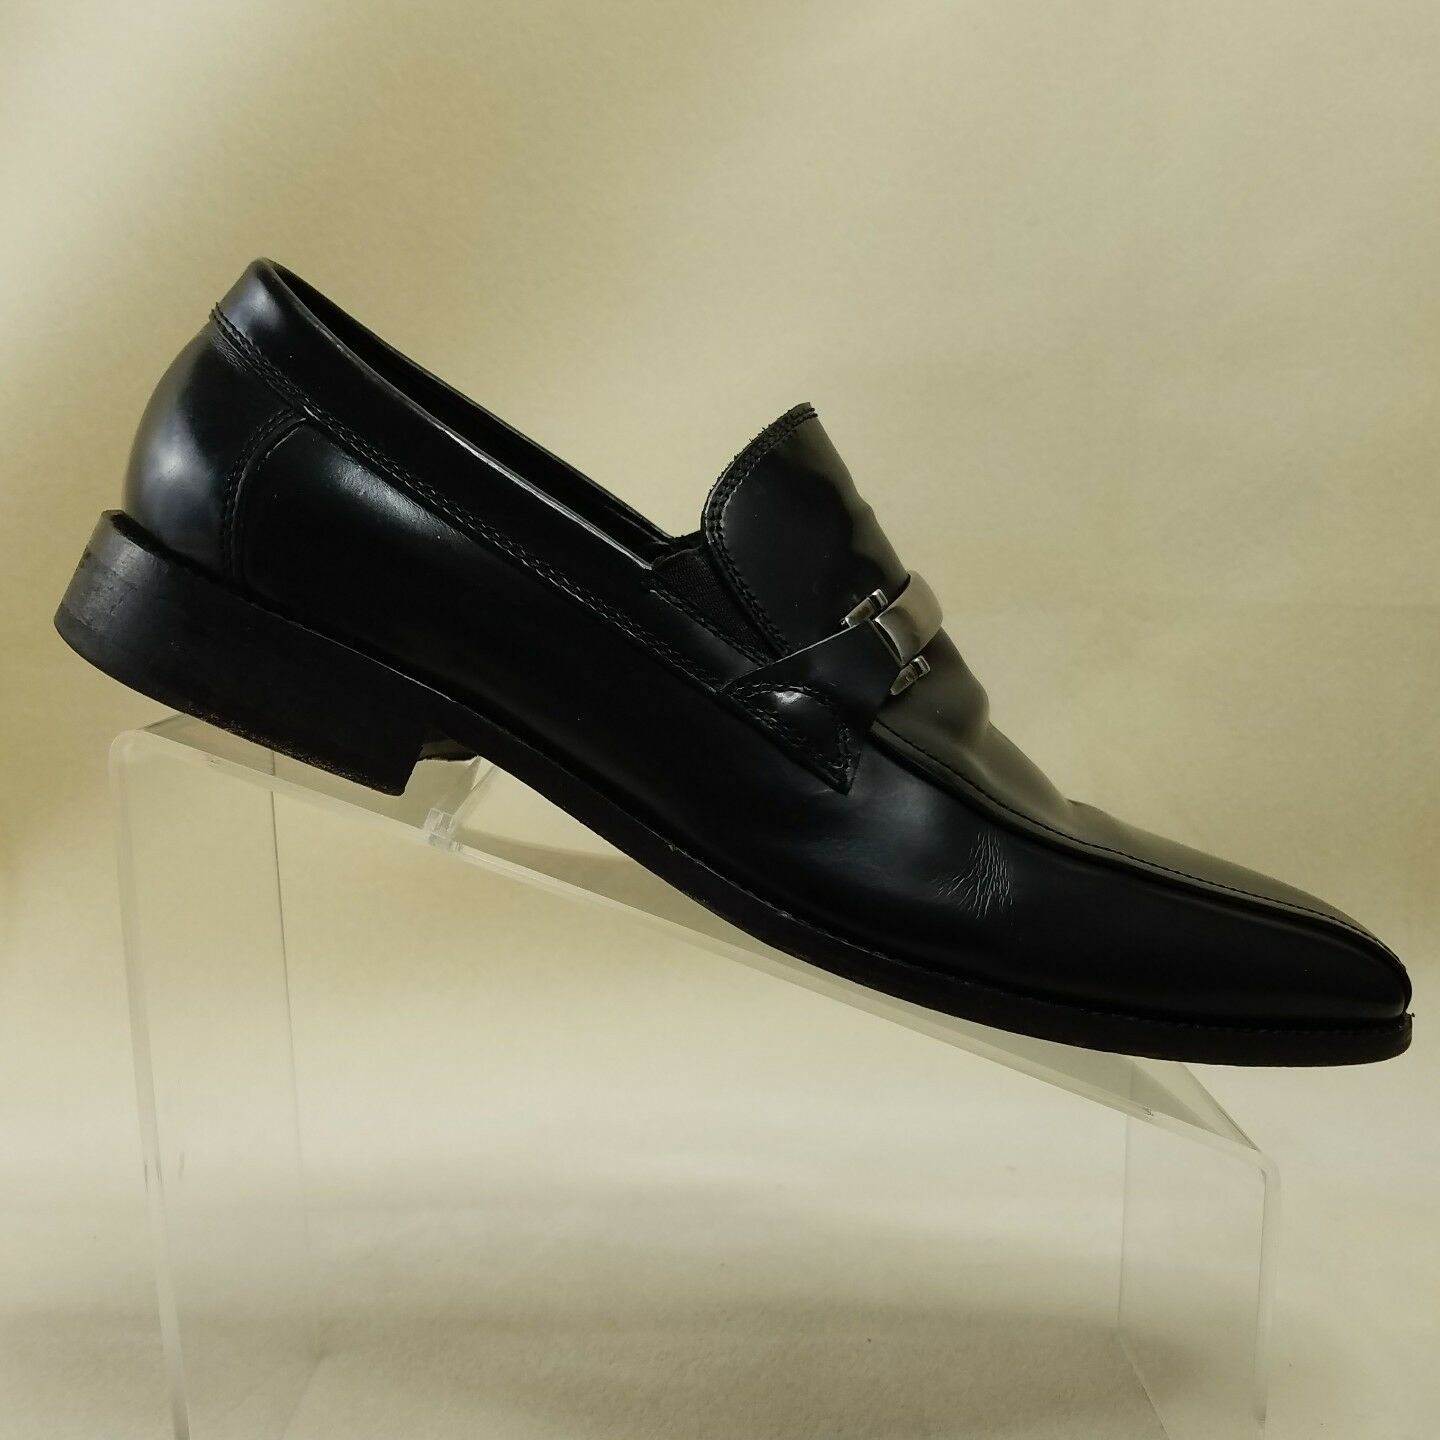 Johnston Murphy Mens Size 9M Loafers Dress Shoes Horsebit Black Leather Dress Loafers #F96 13a183